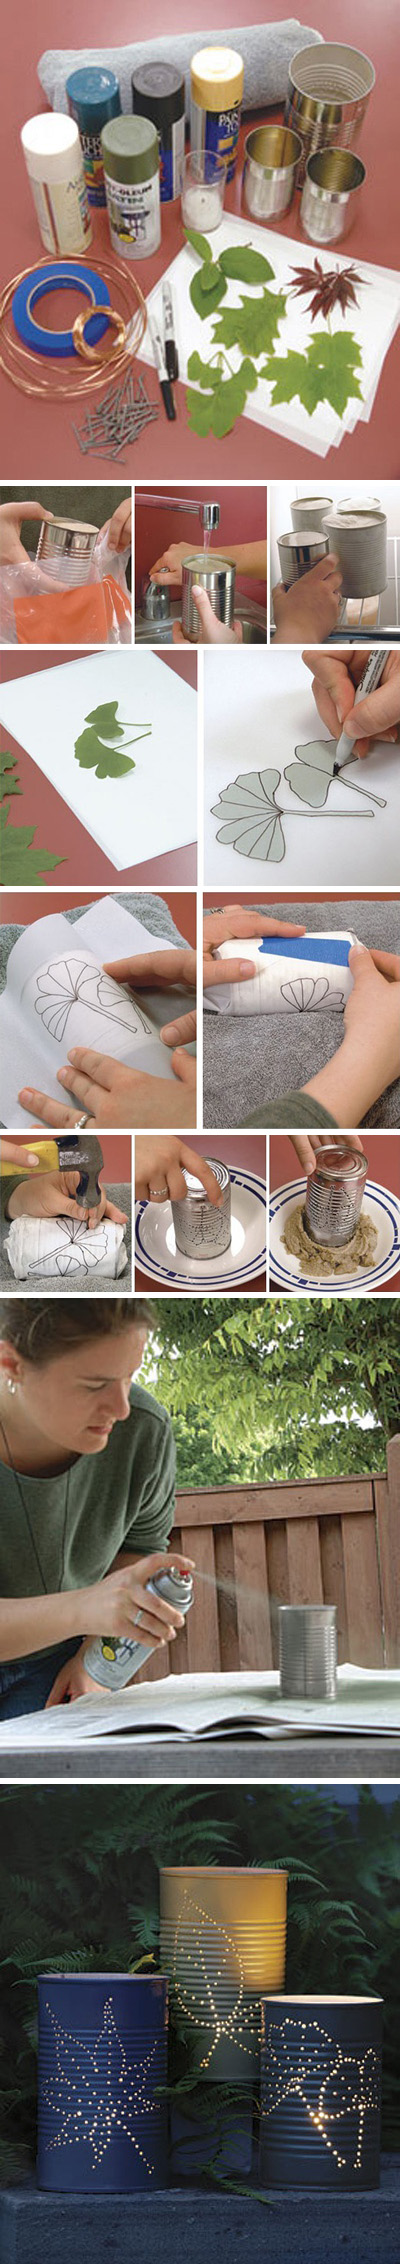 Recycled/Upcycled tin can lantern.  I have made can laterns before and these look super easy.  As well, what great inspiration for design.  I love the leaf pattern!